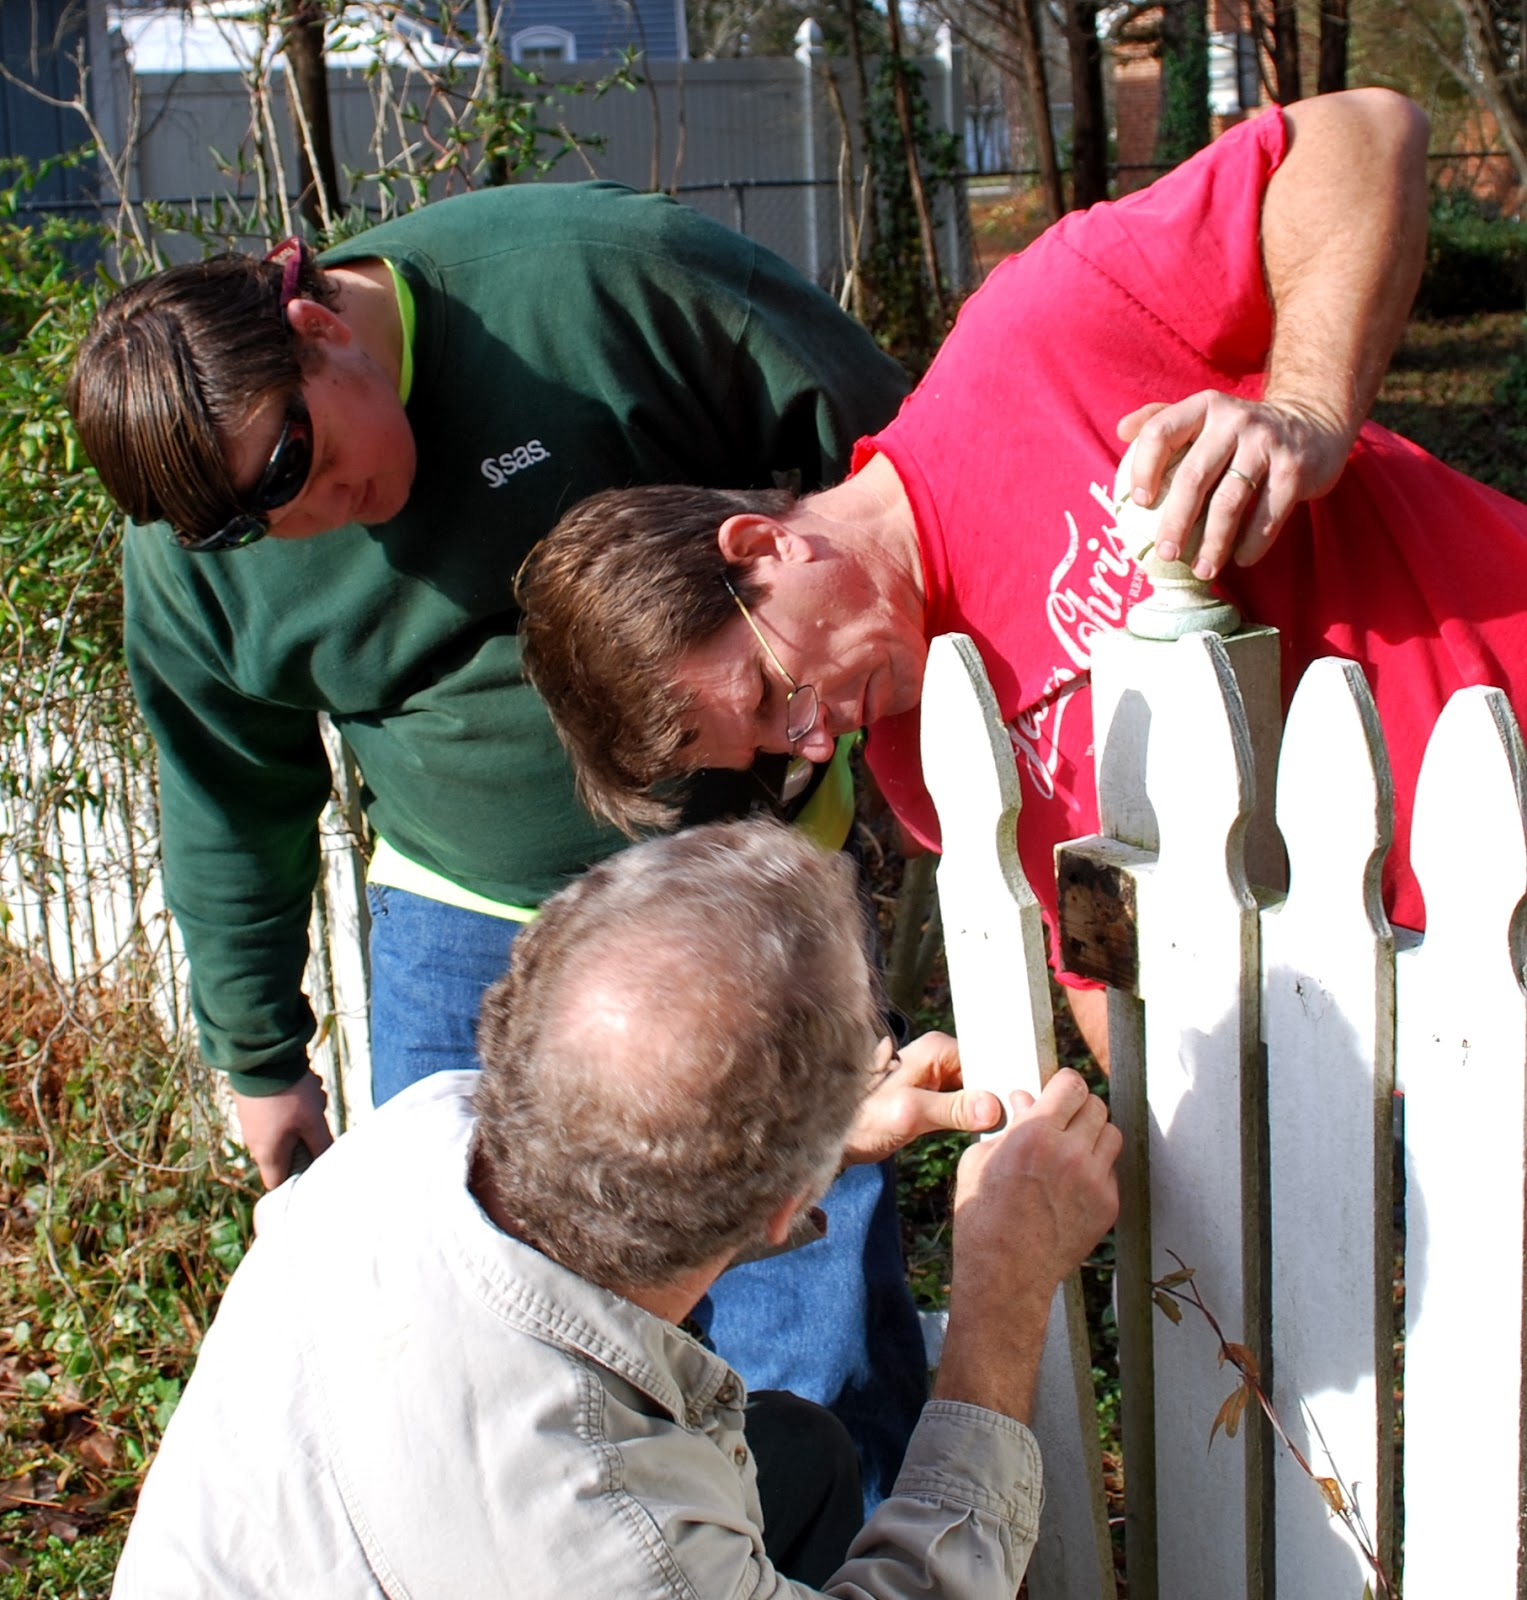 Excelsior 2013 No Disassemble Lego Ideas Proposal Makes It Easy To How Many Able Bodied Men Does Take A Picket Fence